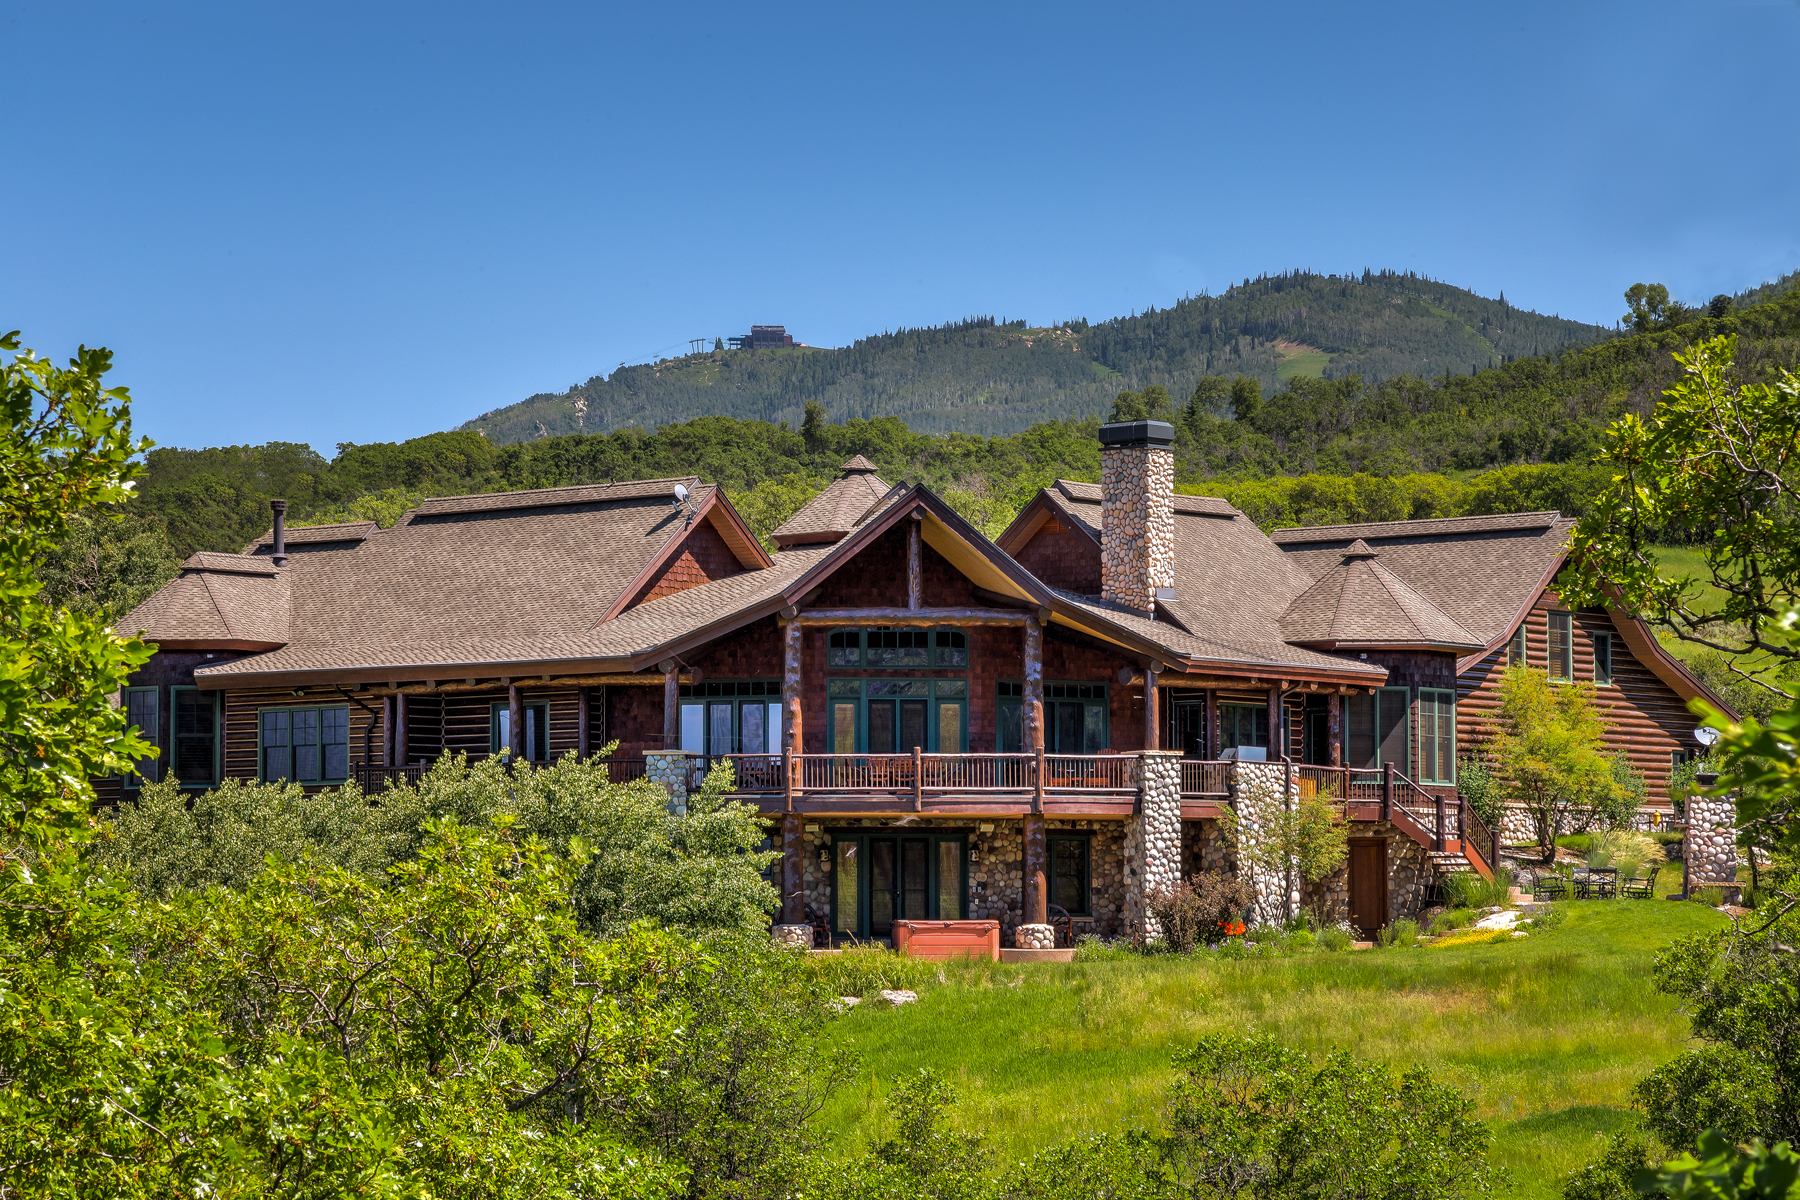 Additional photo for property listing at Catamount Ranch 34200 Catamount Dr. Steamboat Springs, Colorado 80487 United States